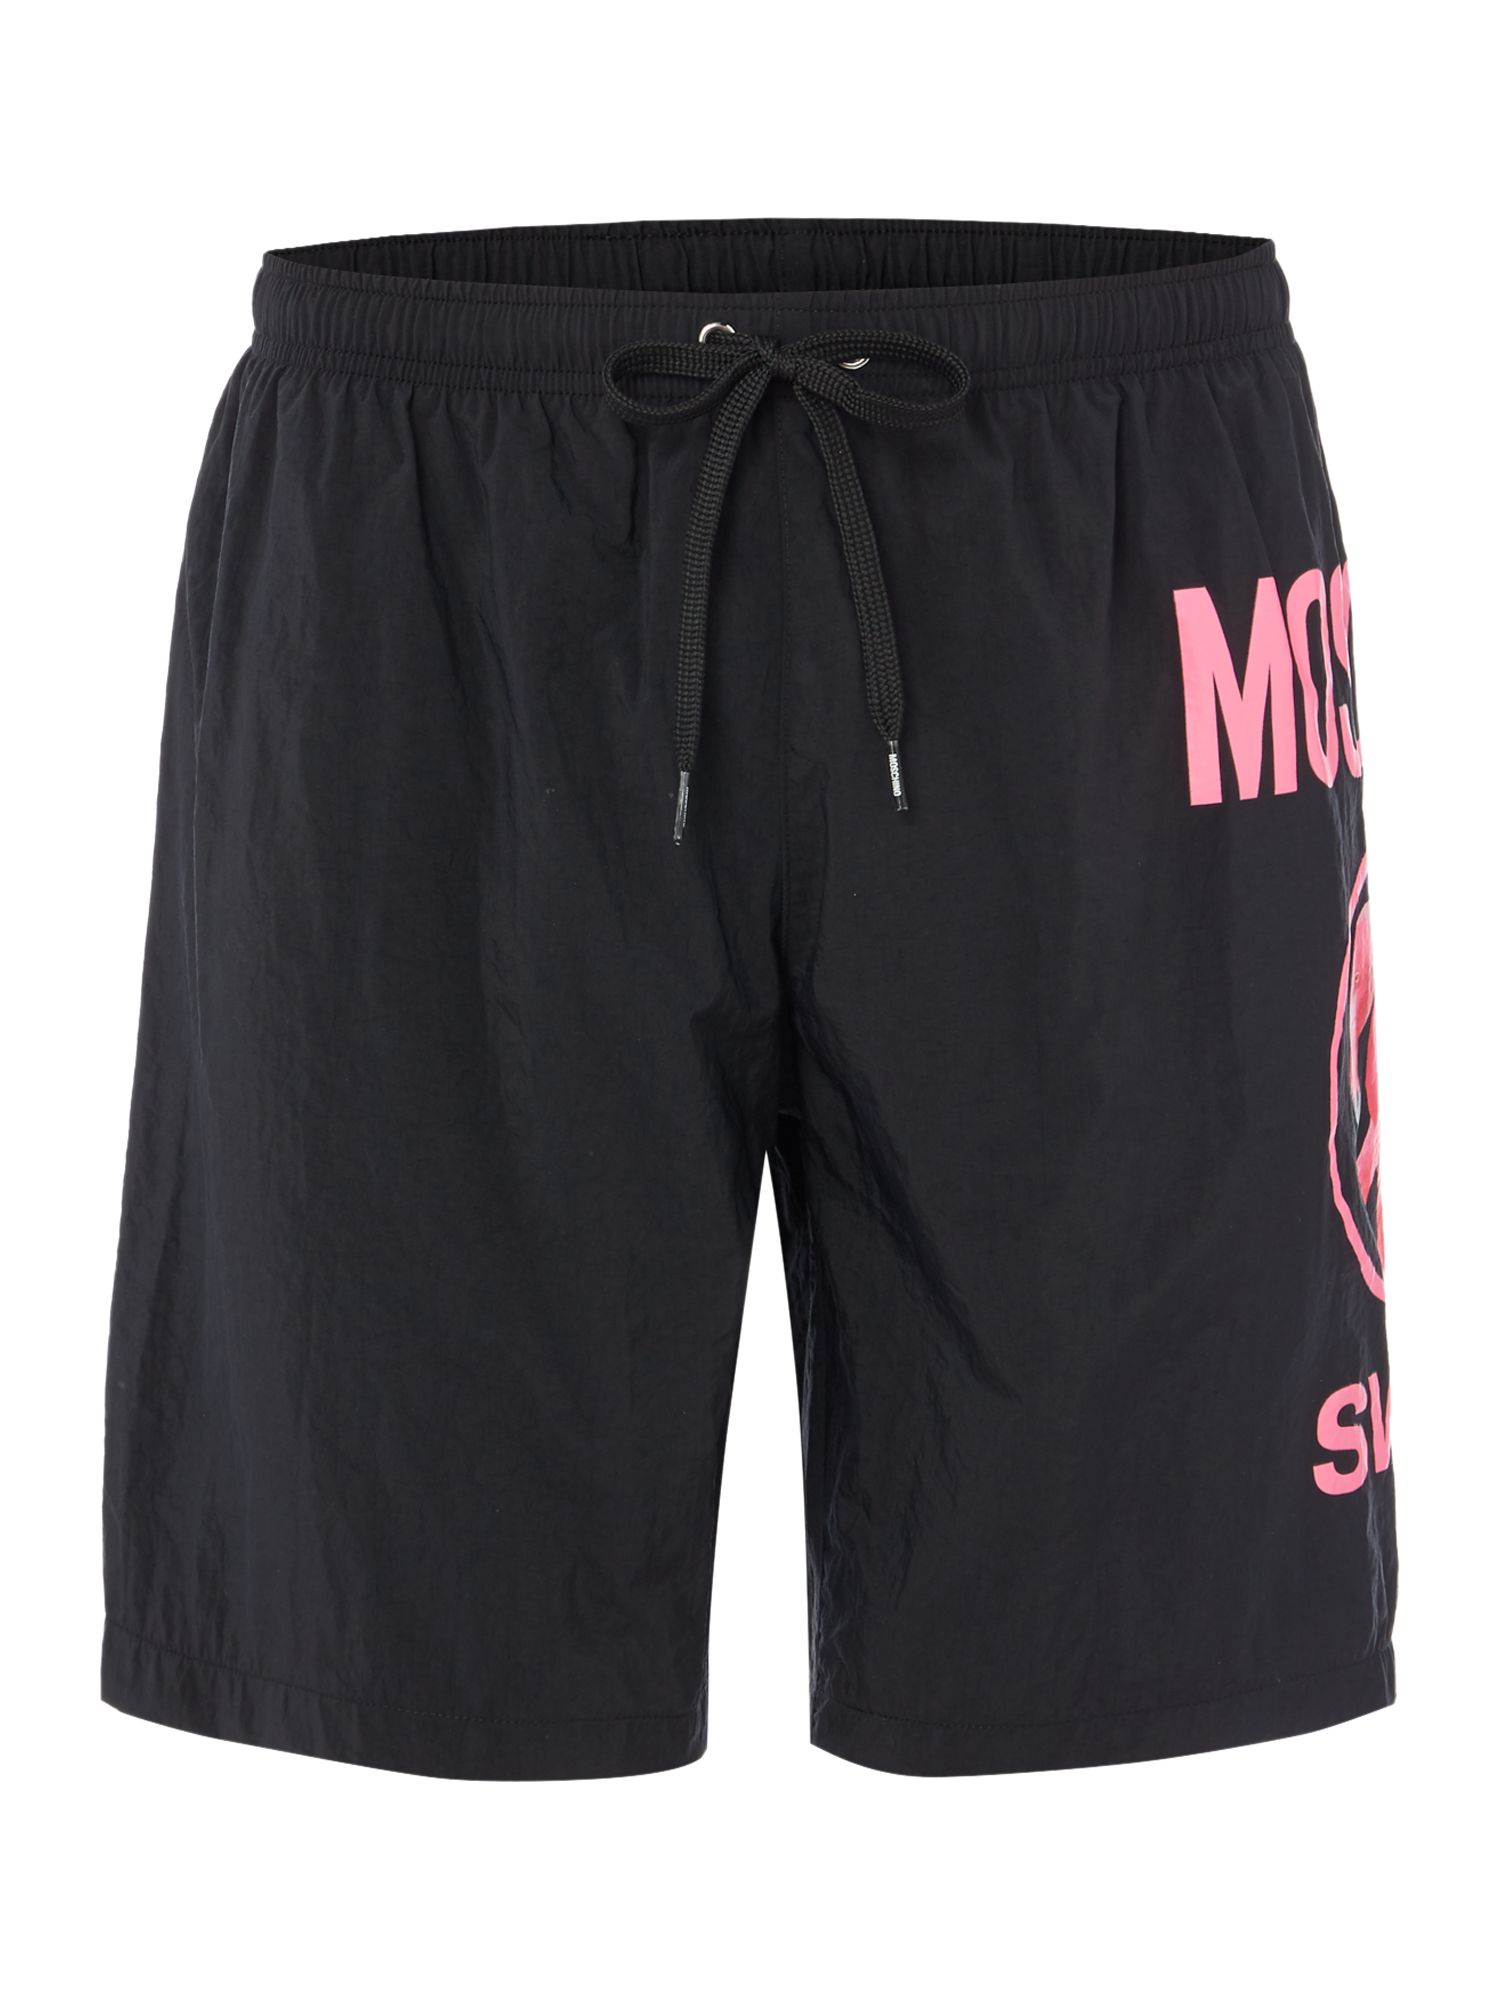 Men's Moschino Logo Swim Short, Black